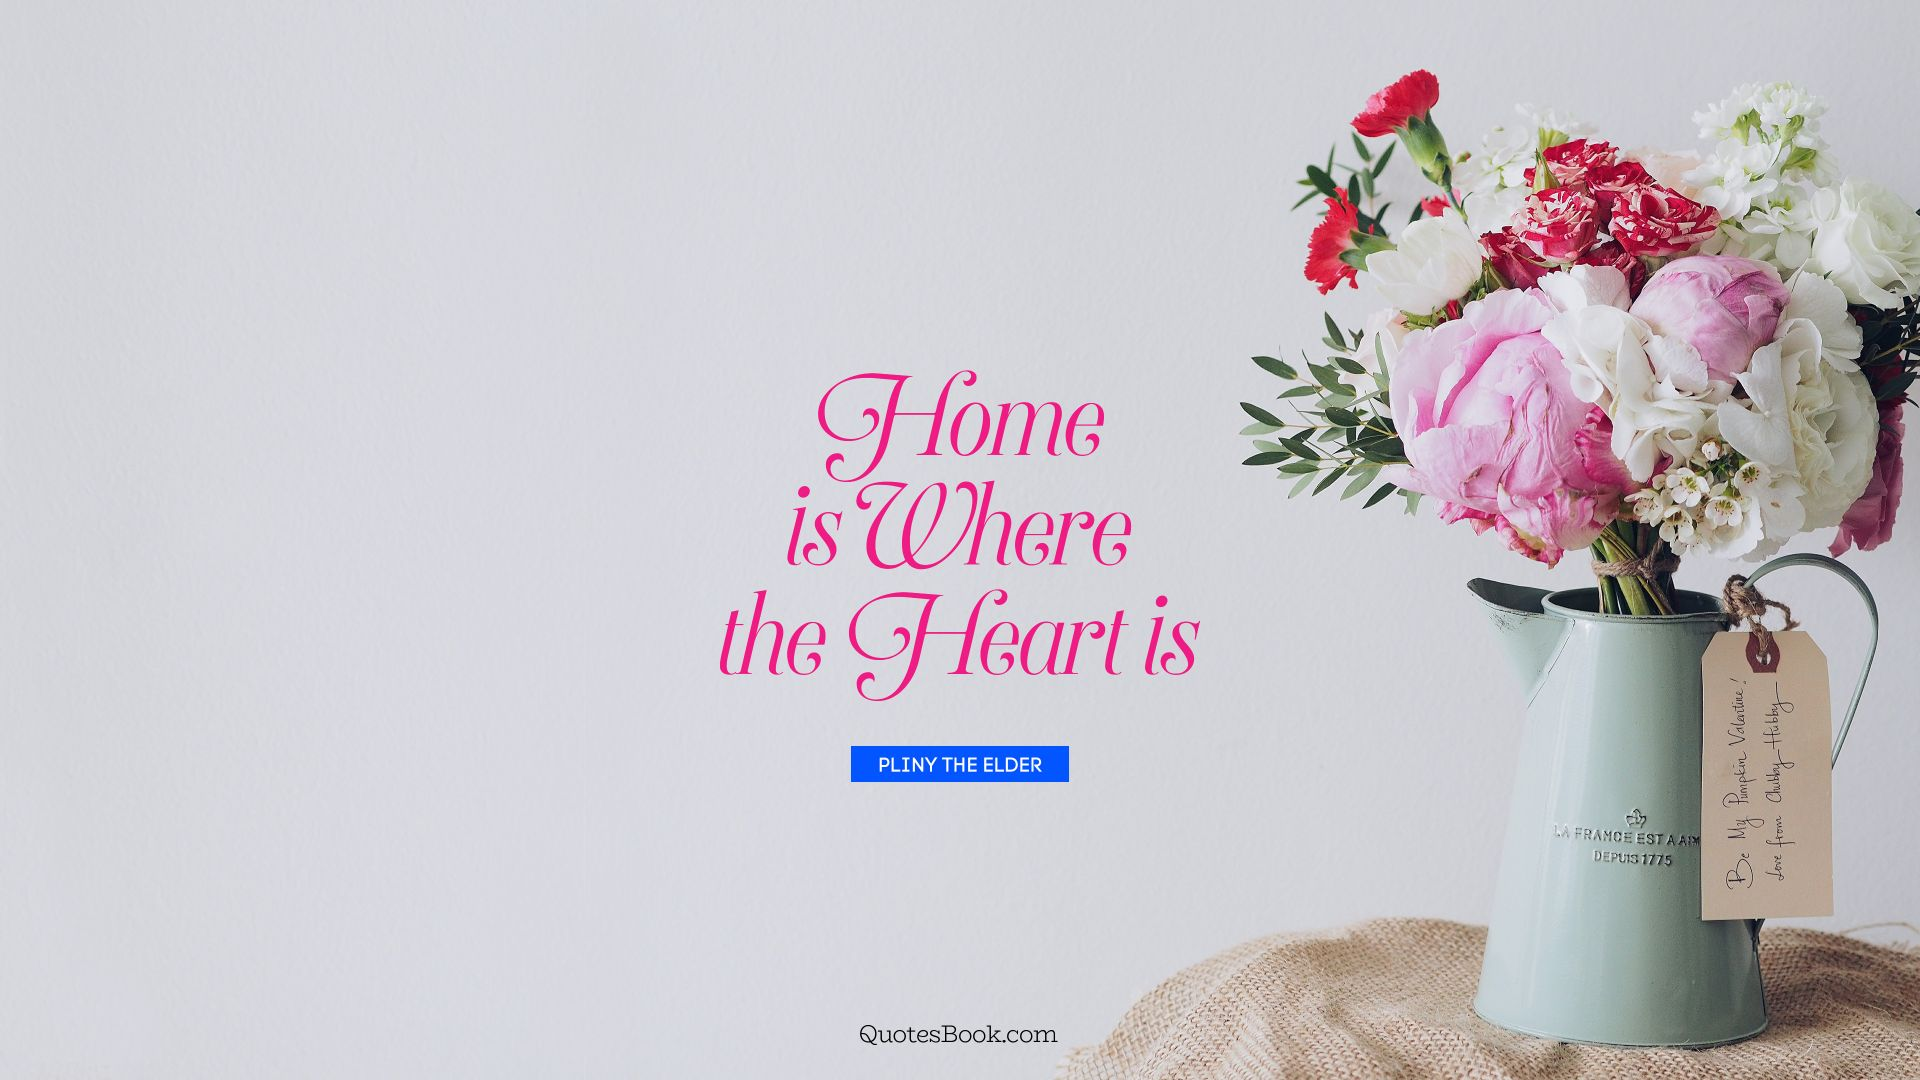 Home is where the heart is. - Quote by Pliny the Elder